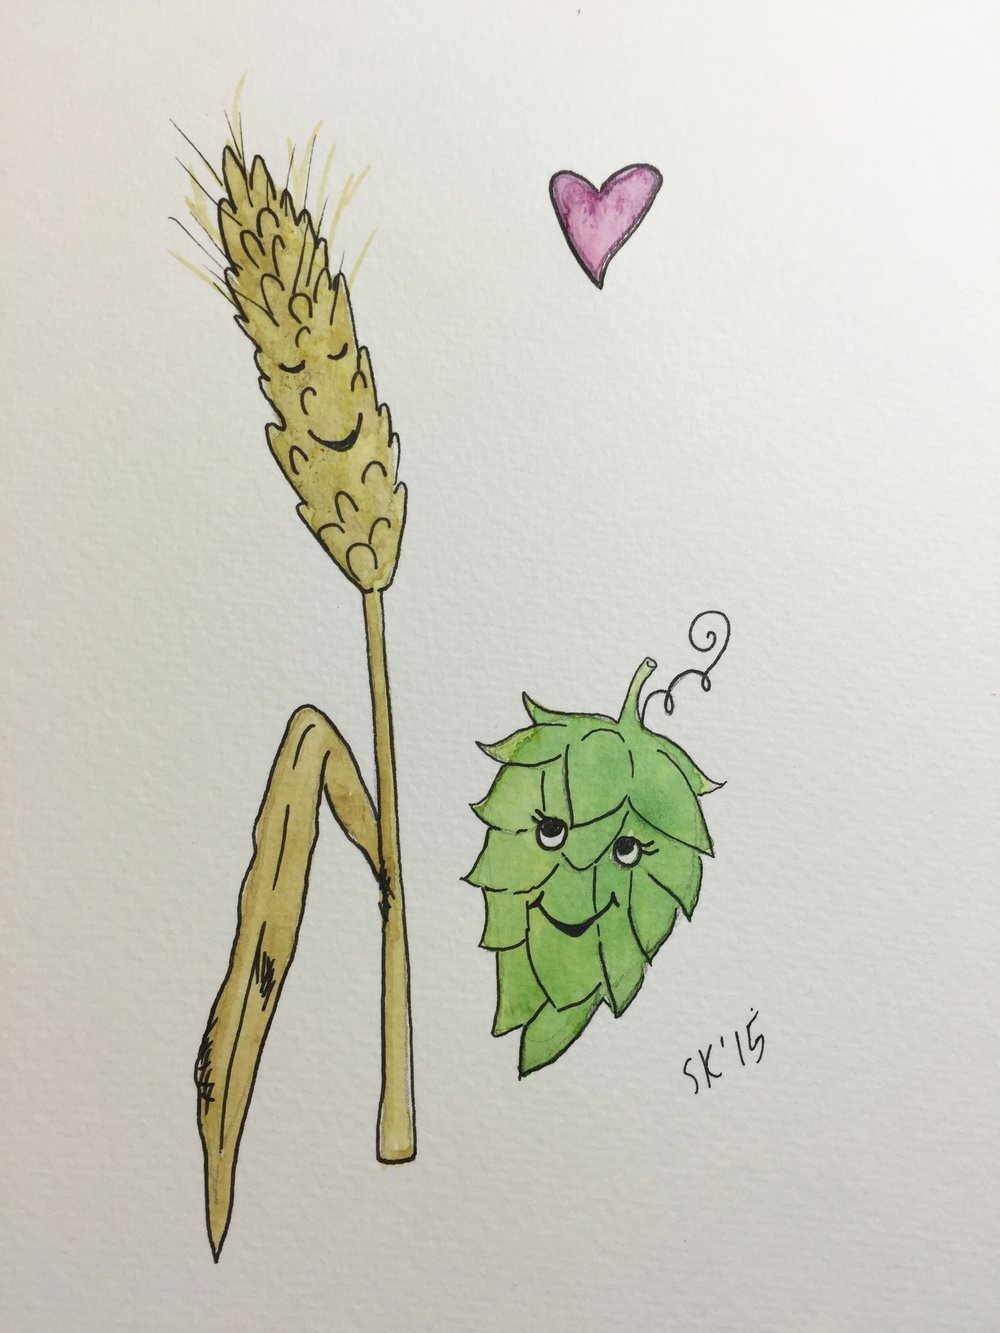 We Go Together Like Barley and Hops